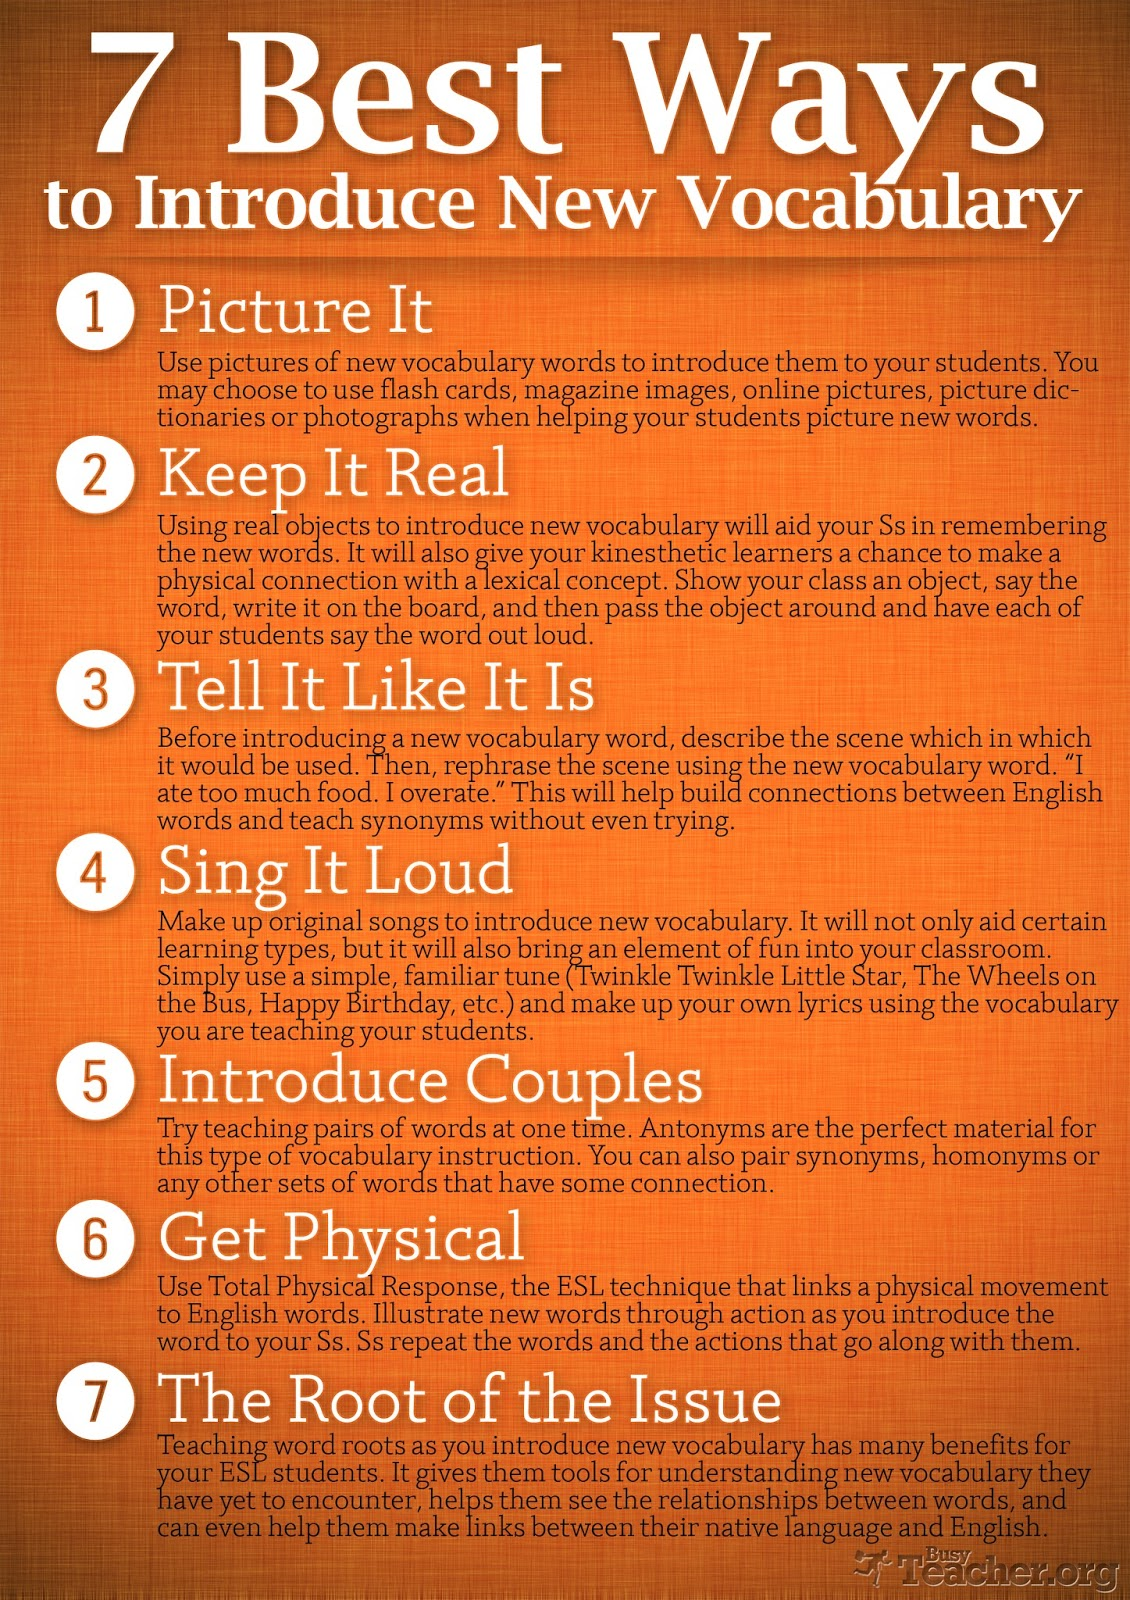 Remedial English 7 Best Ways To Introduce New Vocabulary